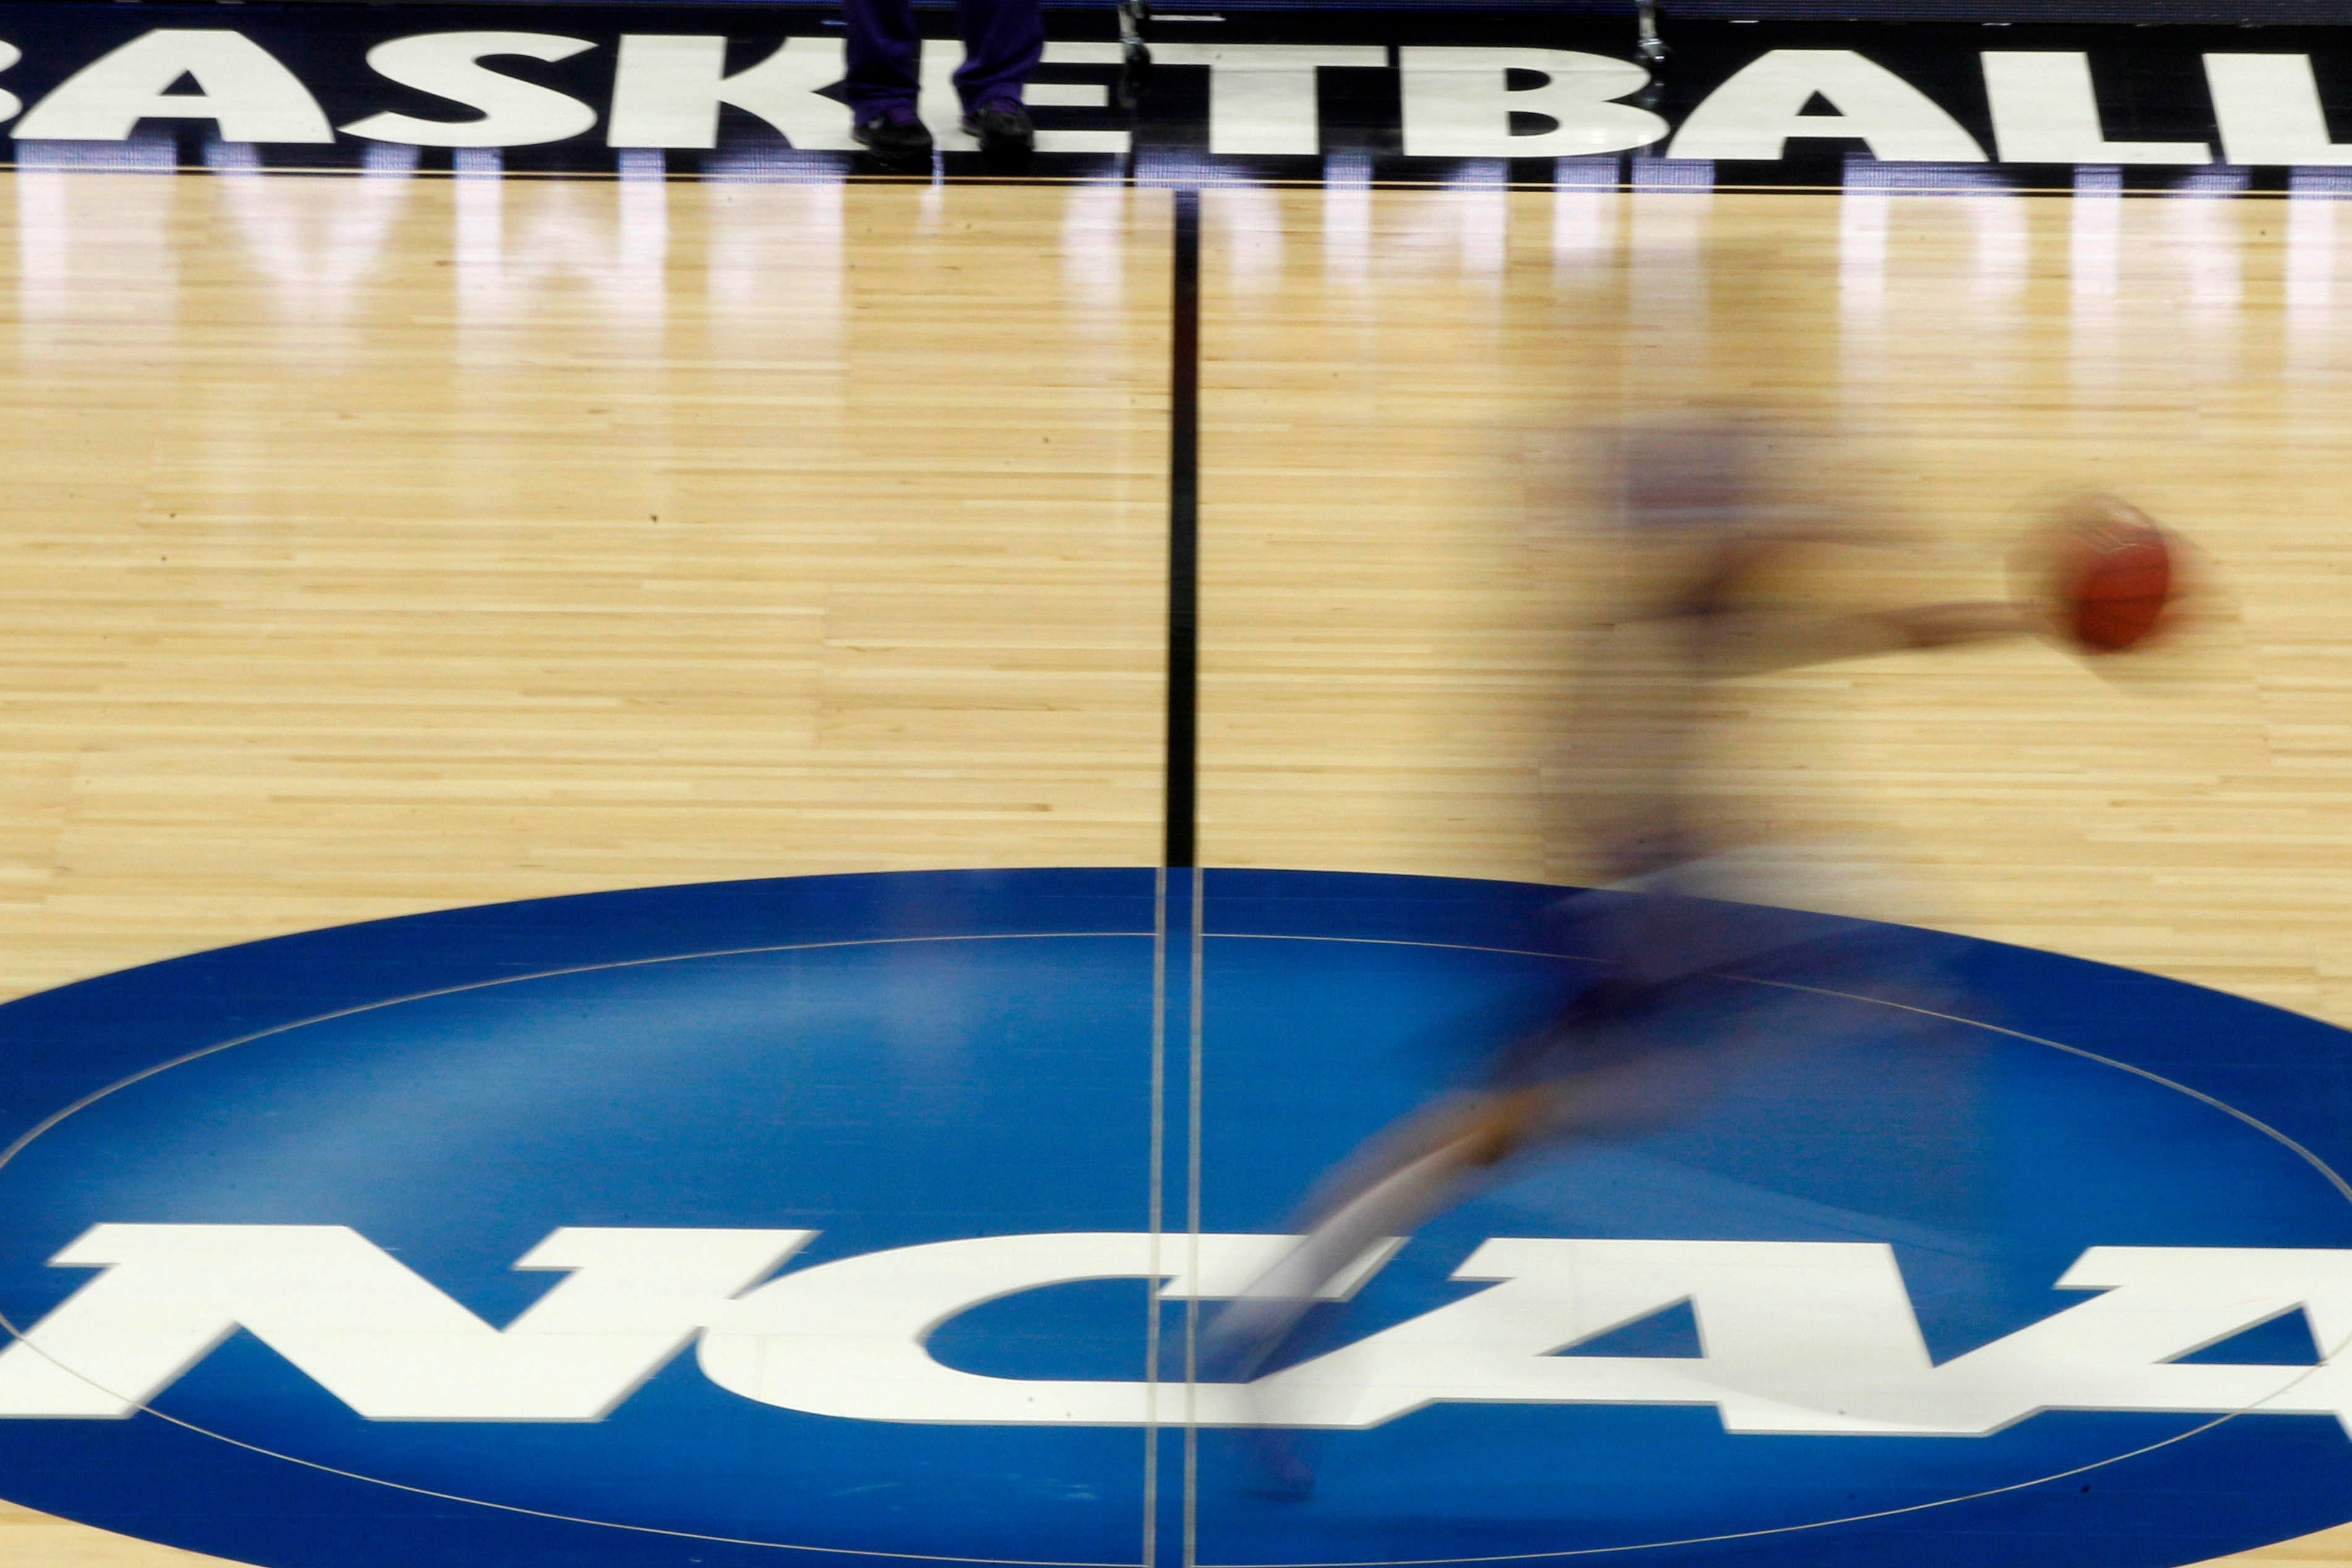 You can't ignore the March Madness cloud any longer